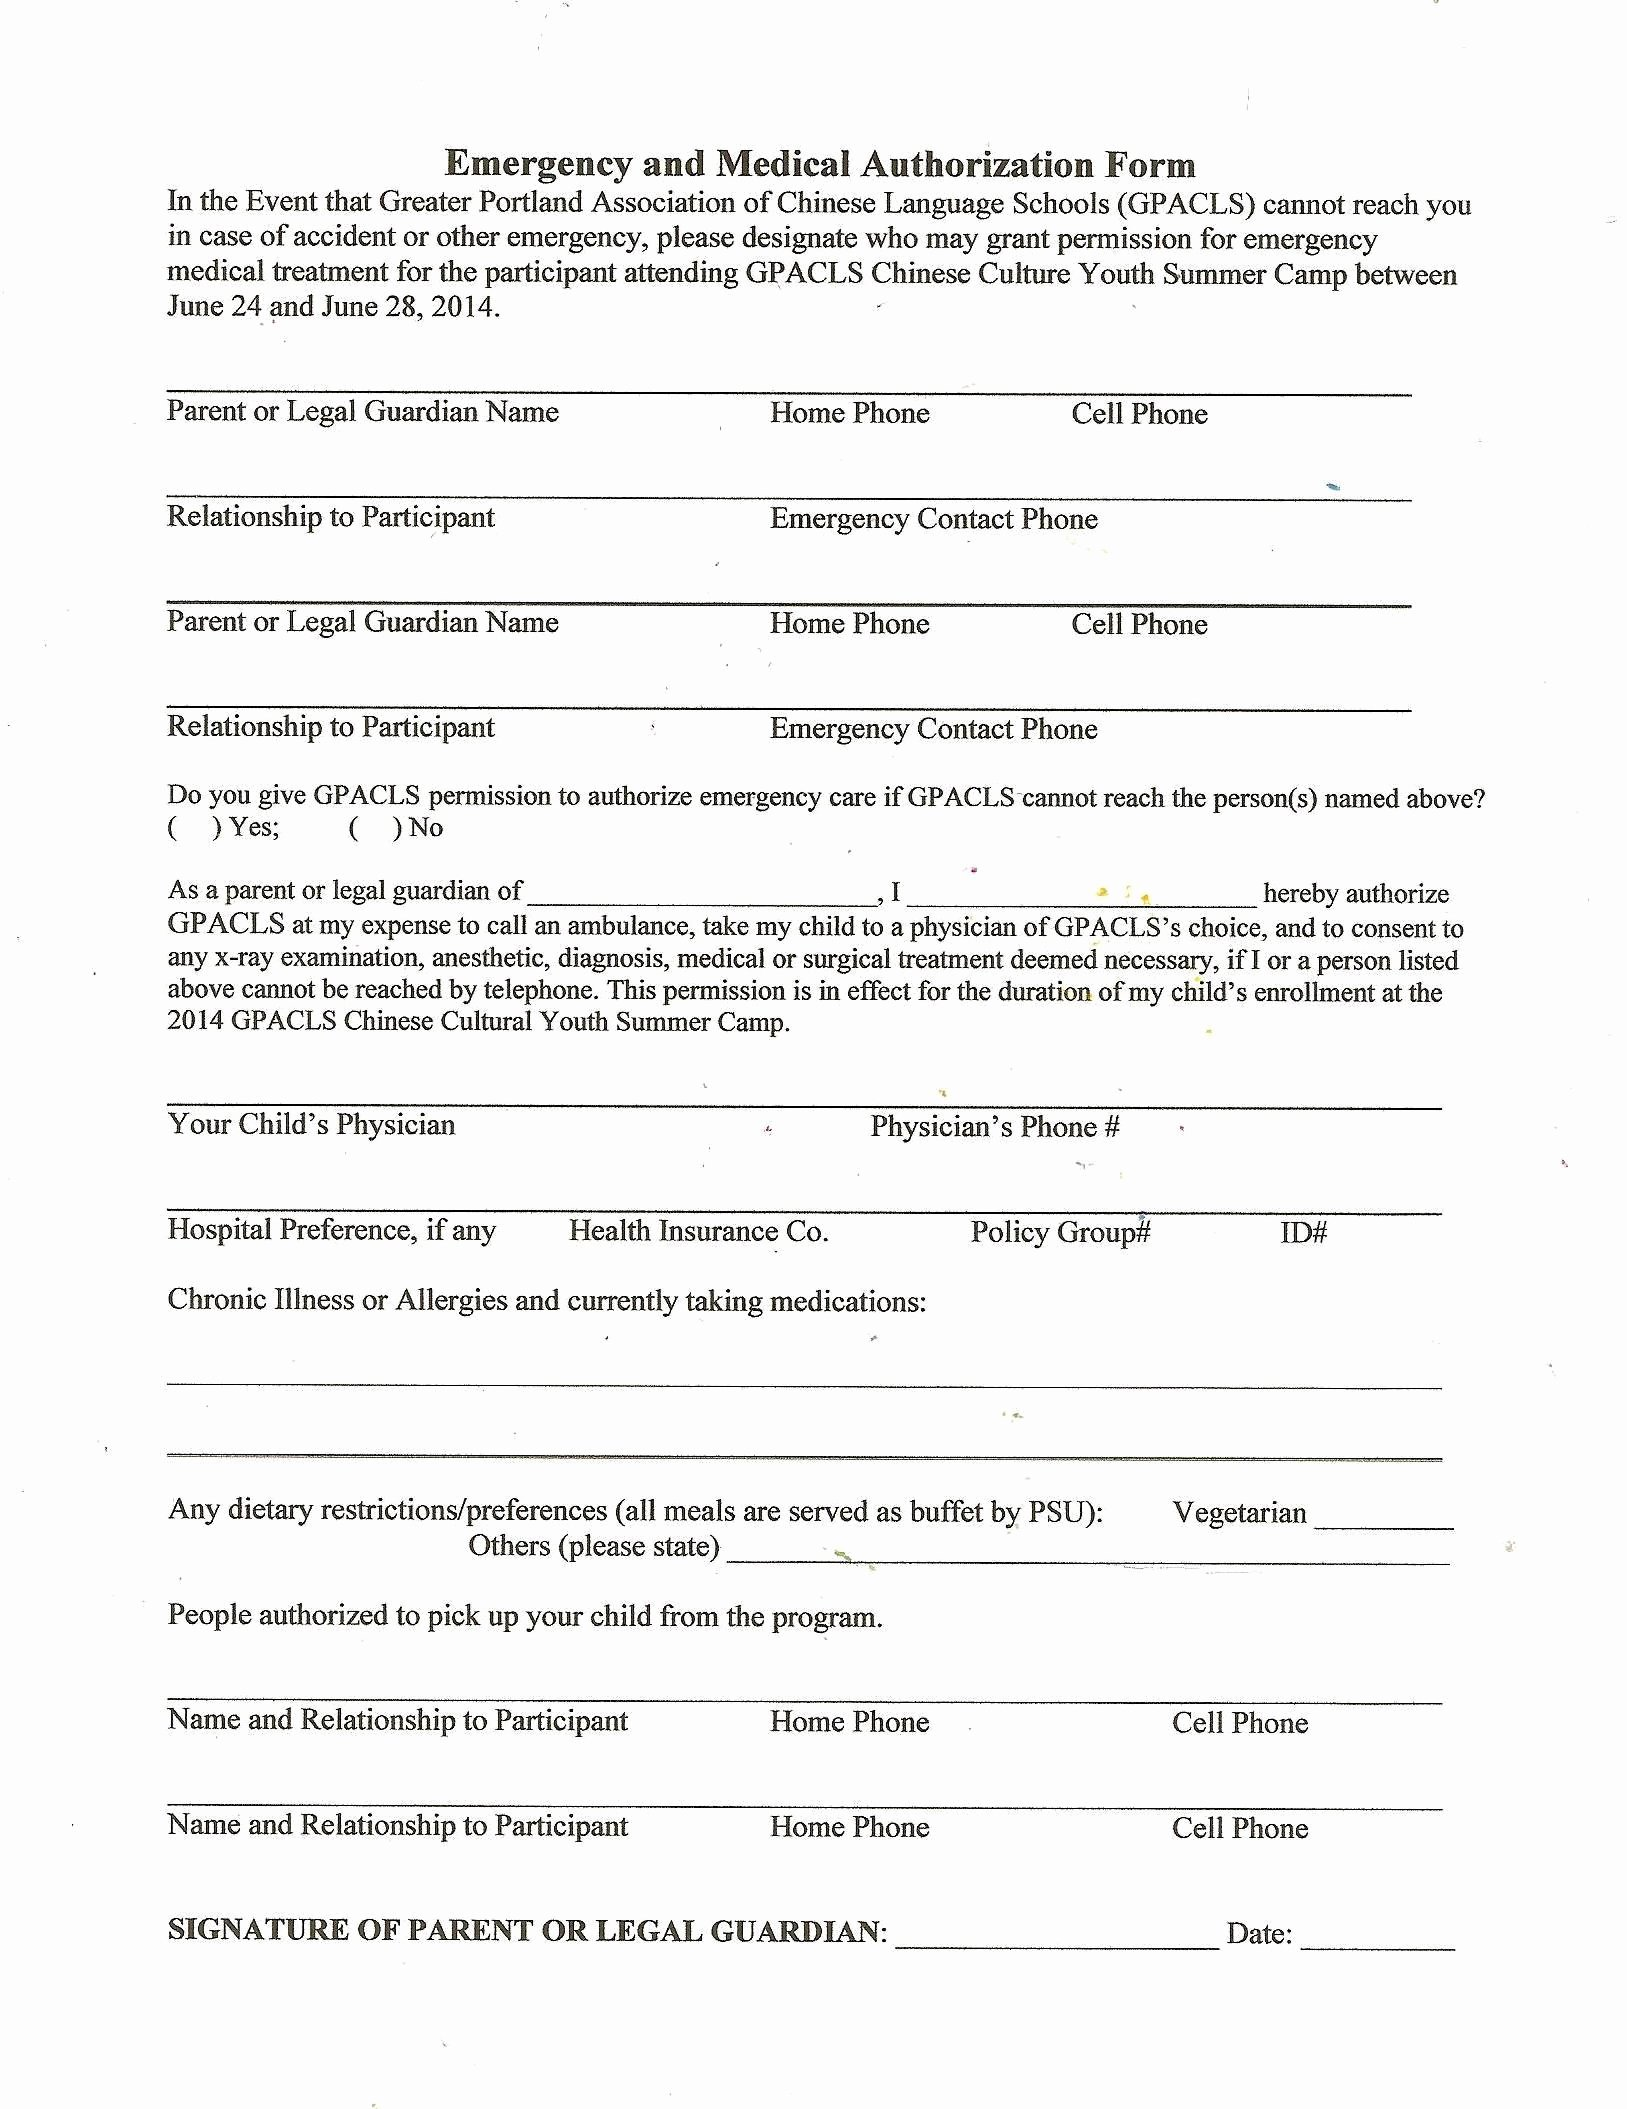 Registration form for Summer Camp Luxury 2014 Chinese Culture Youth Summer Camp